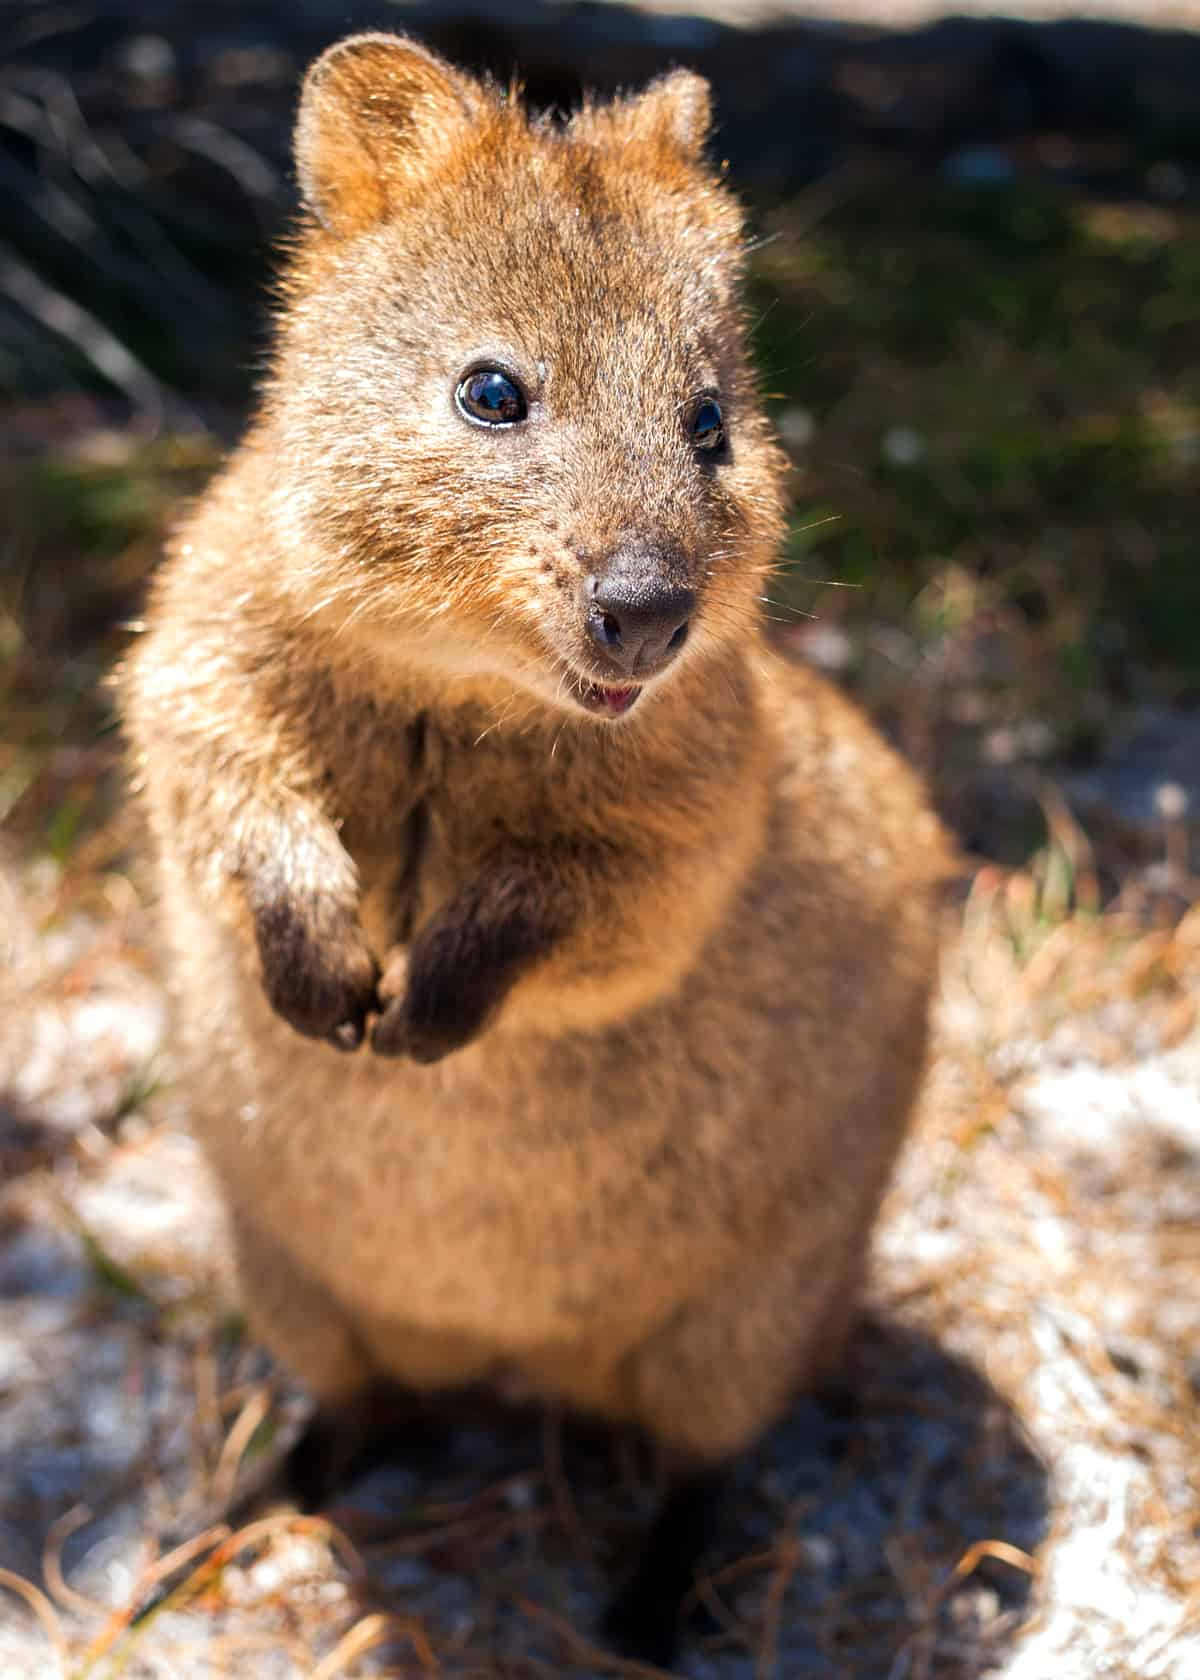 Quokka facts